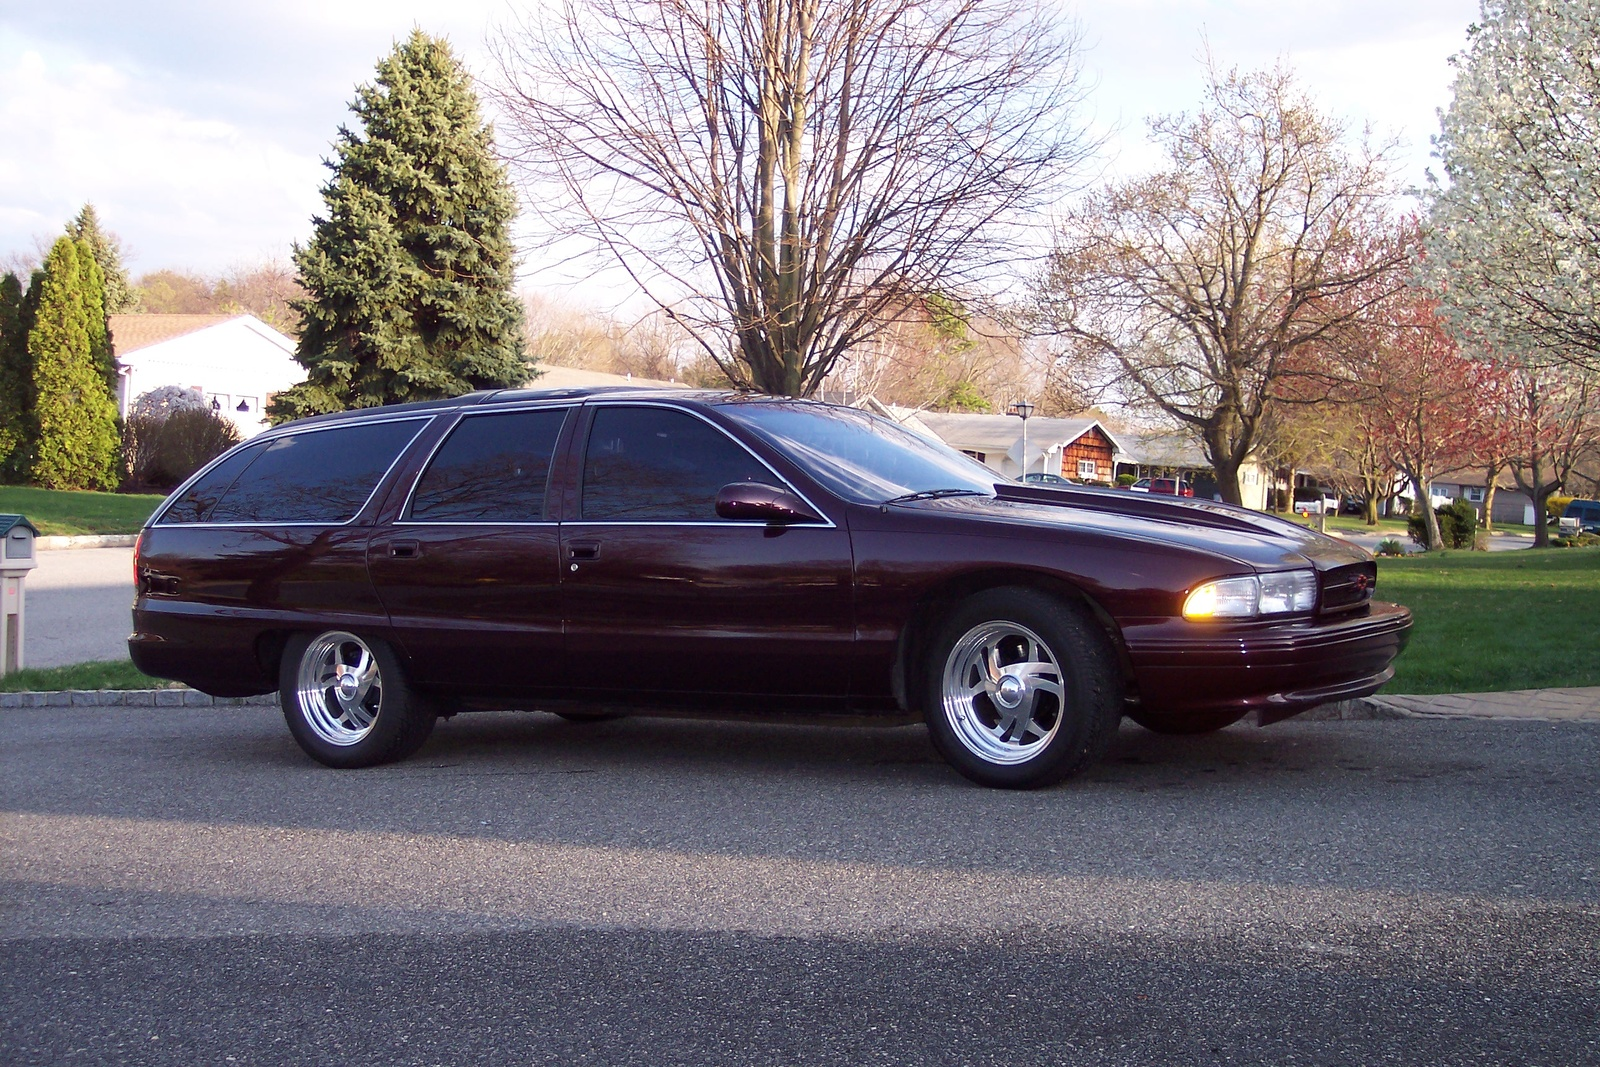 1995 Buick Roadmaster 4 Dr Estate Wagon picture